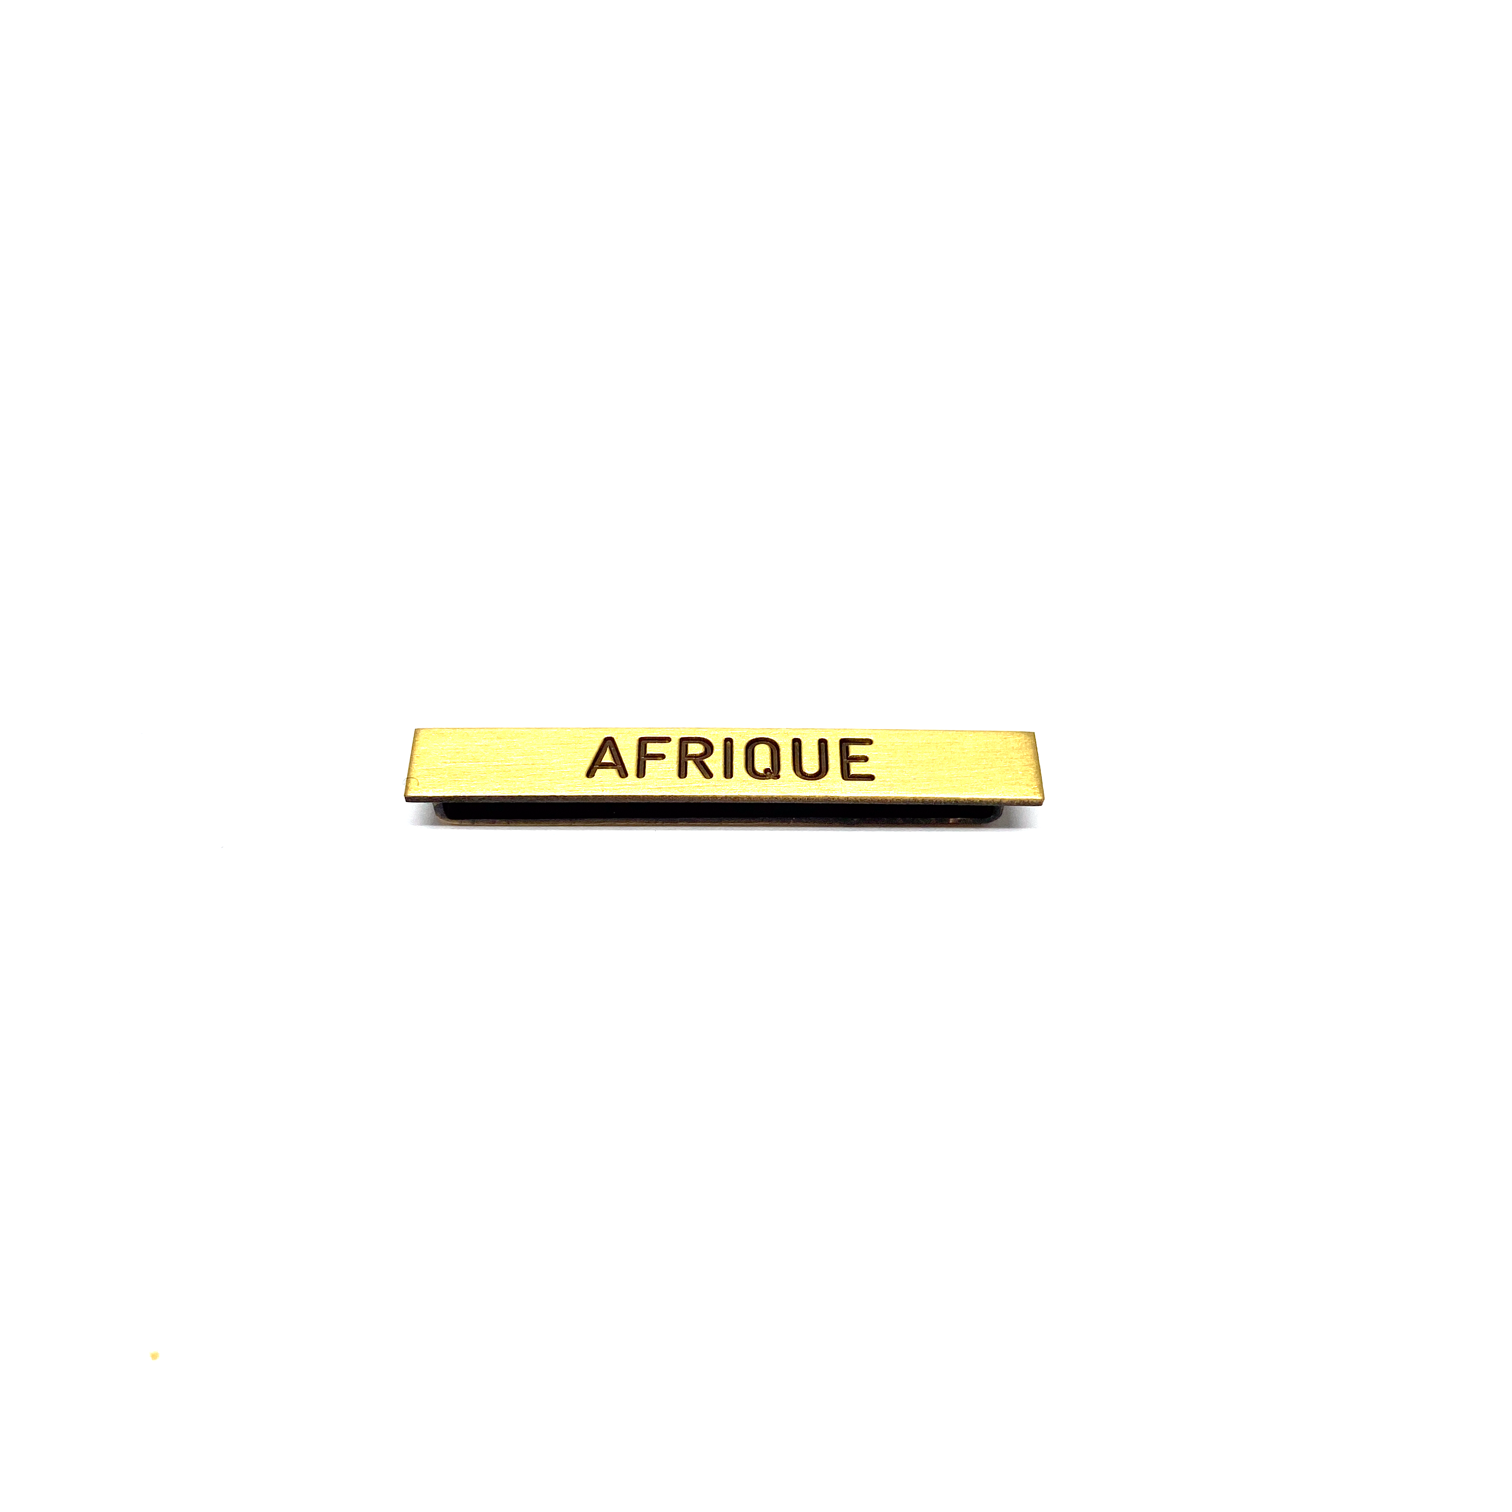 Bar Afrique for military medals